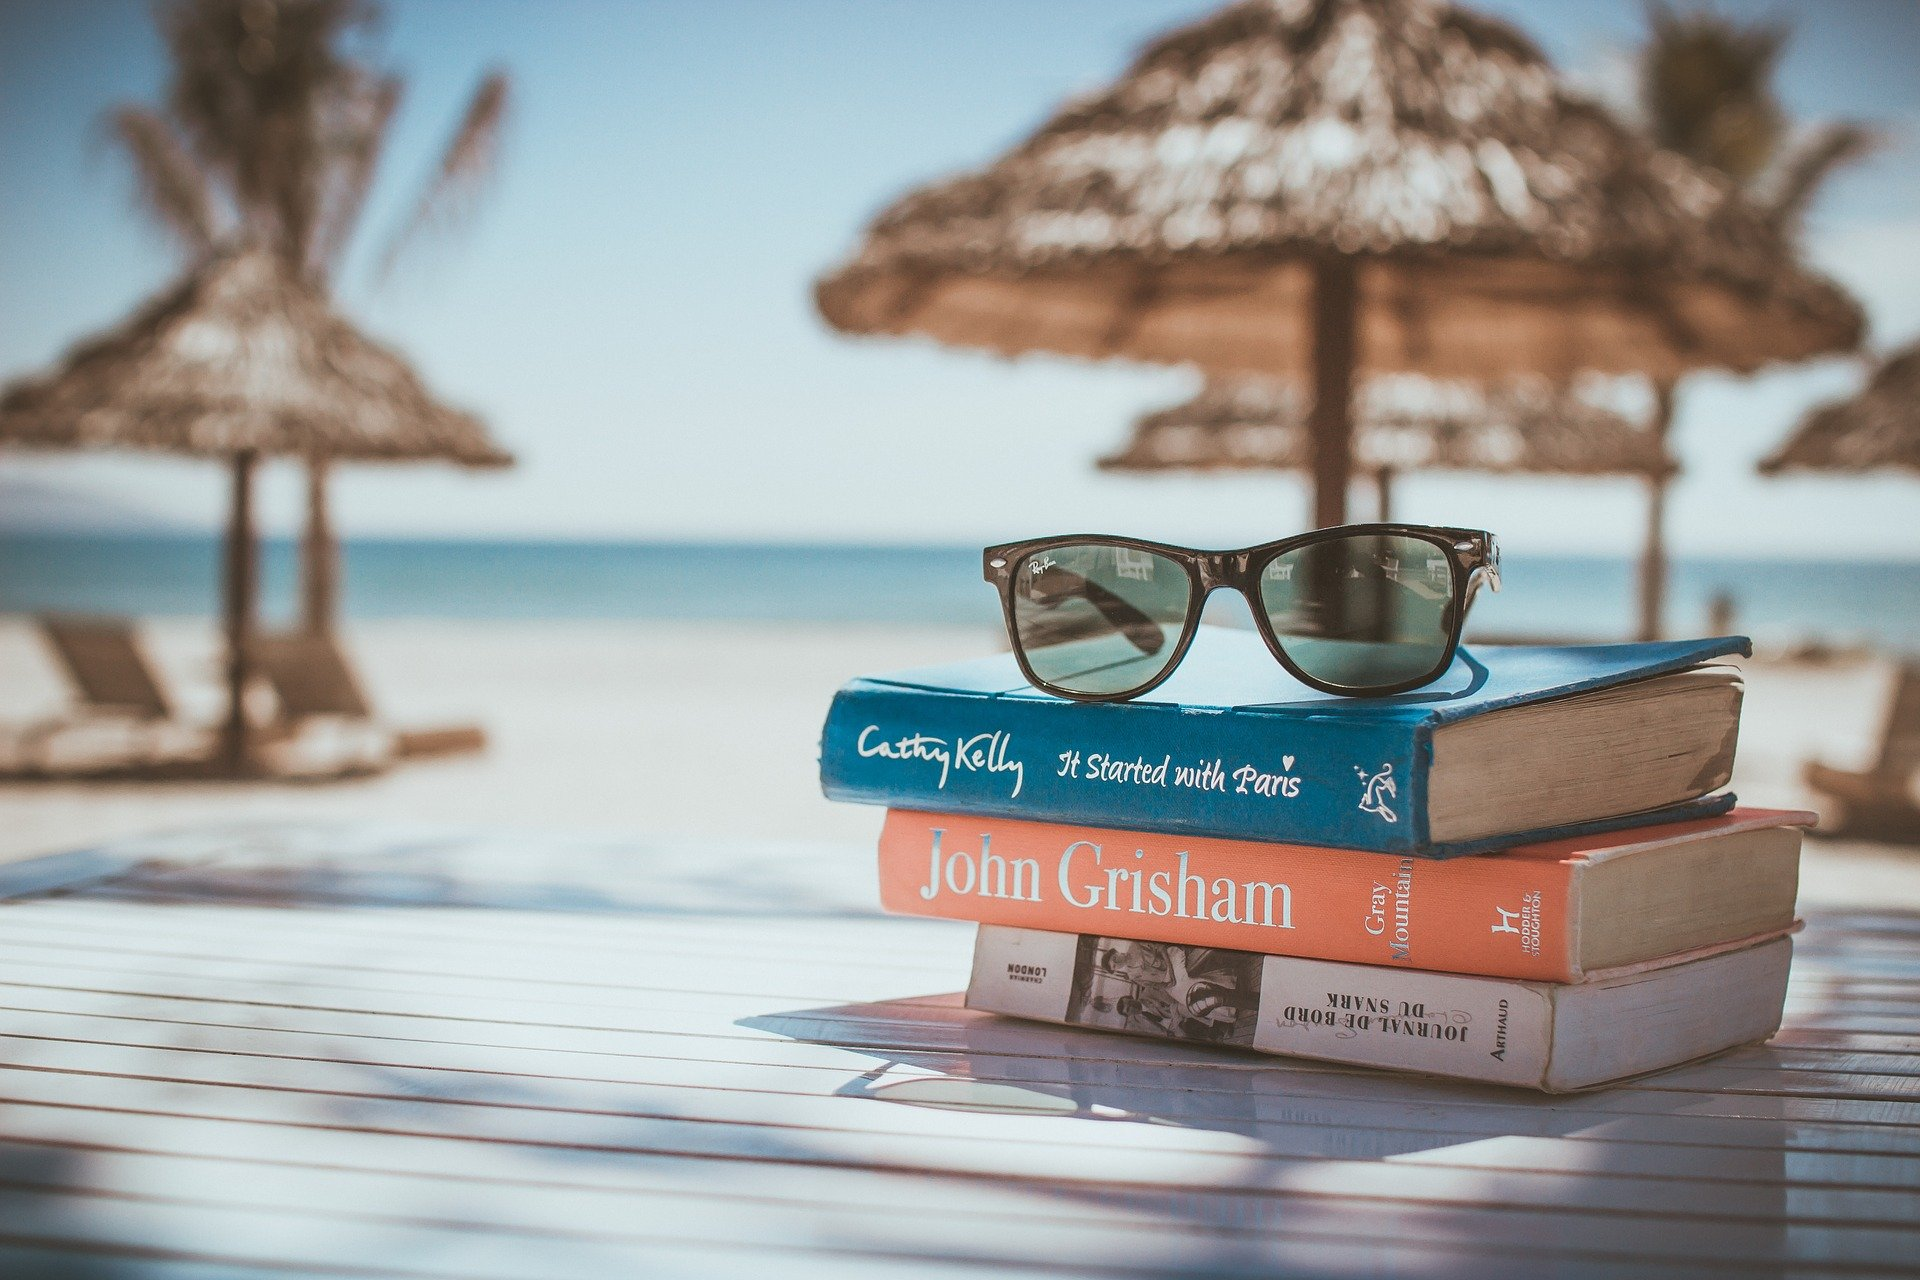 beach scene with sunglasses on top of pile of fiction books